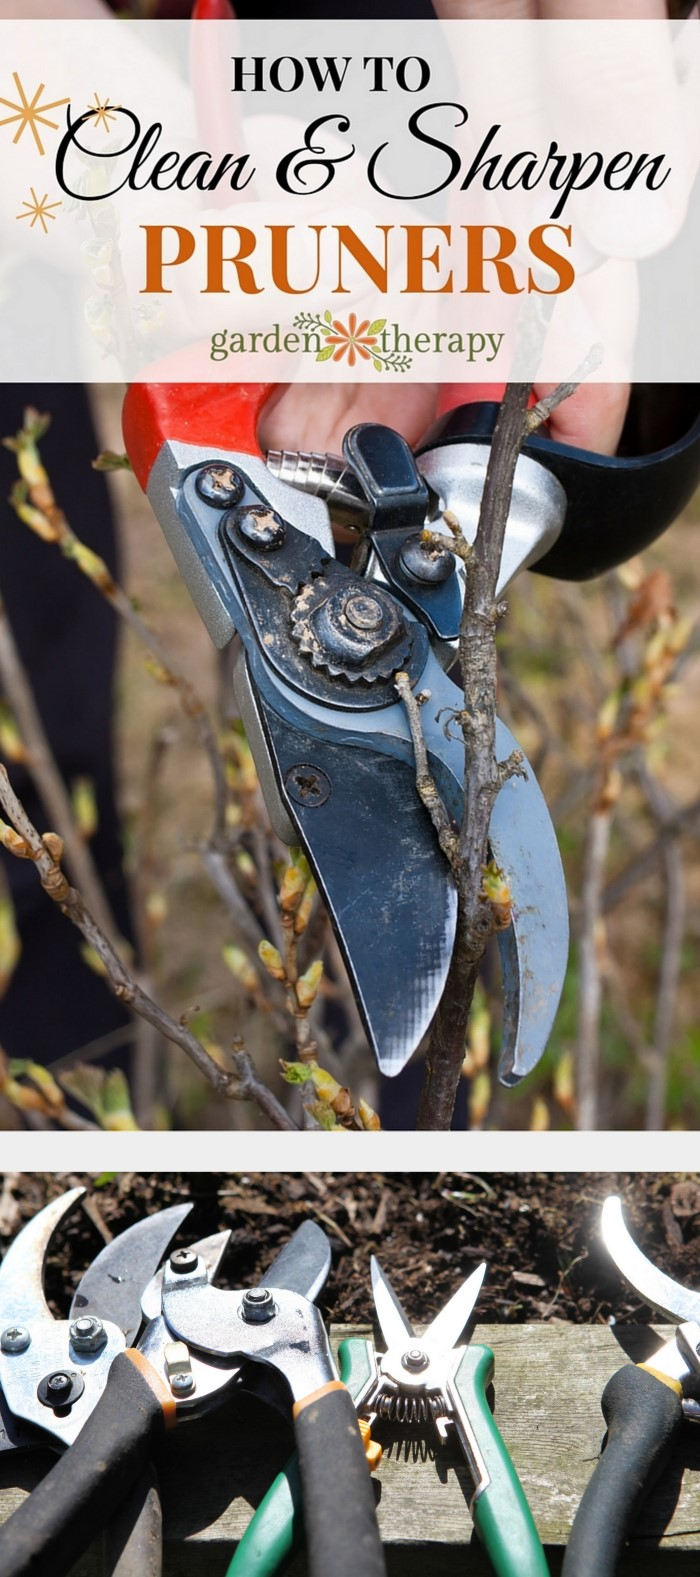 How to care for pruners